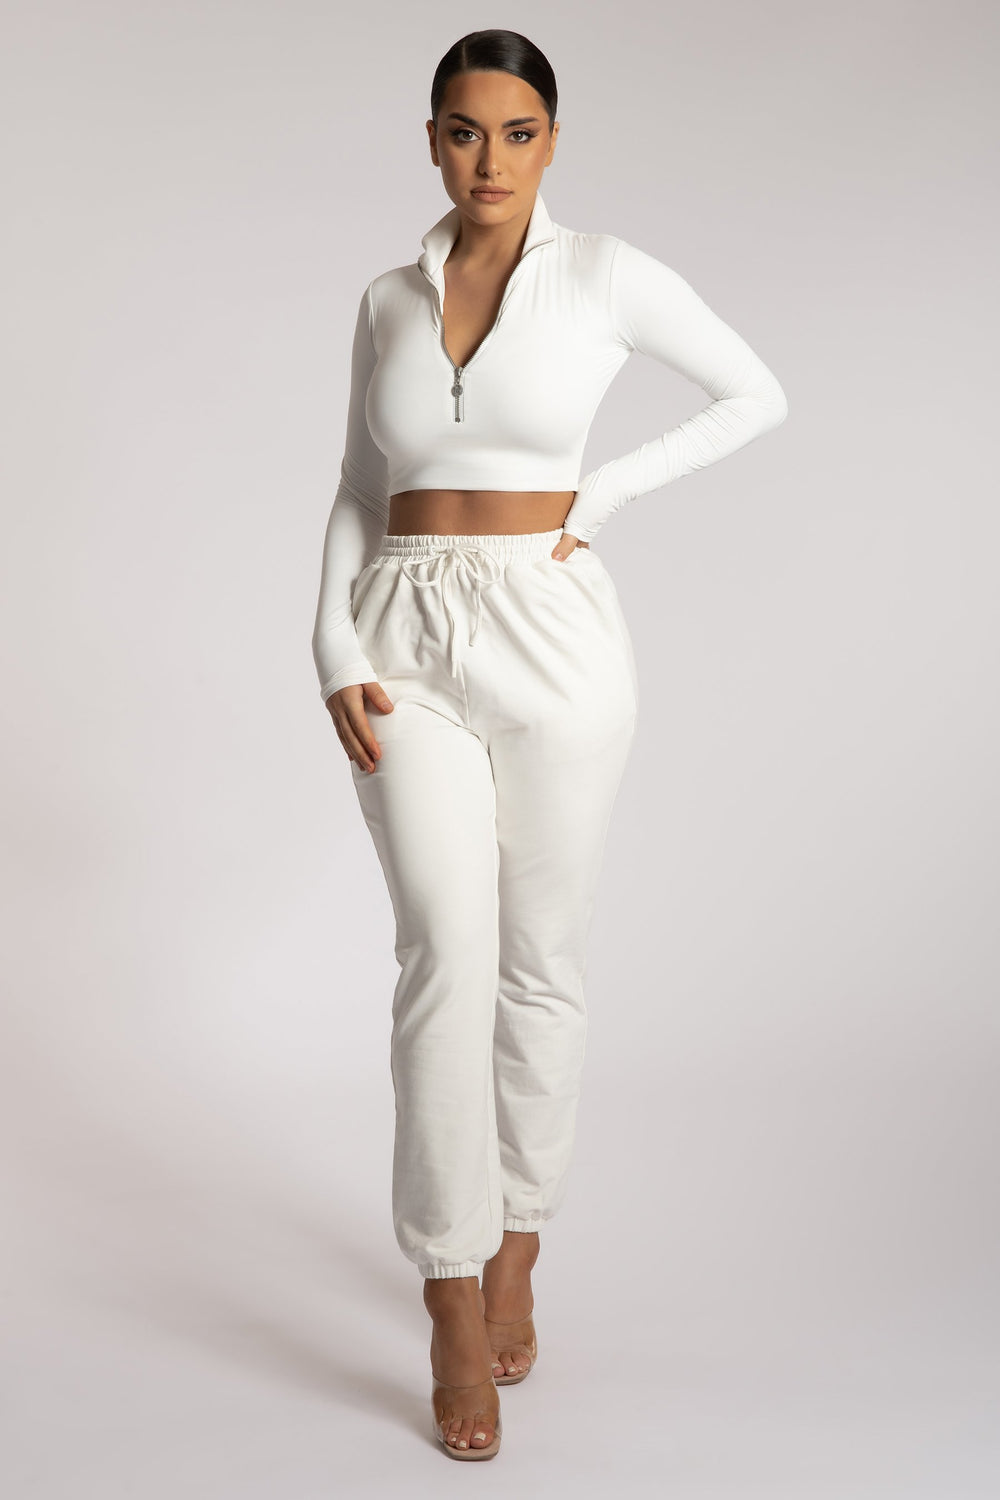 Ashlea Long Sleeve Zip Up Crop Top - White - MESHKI